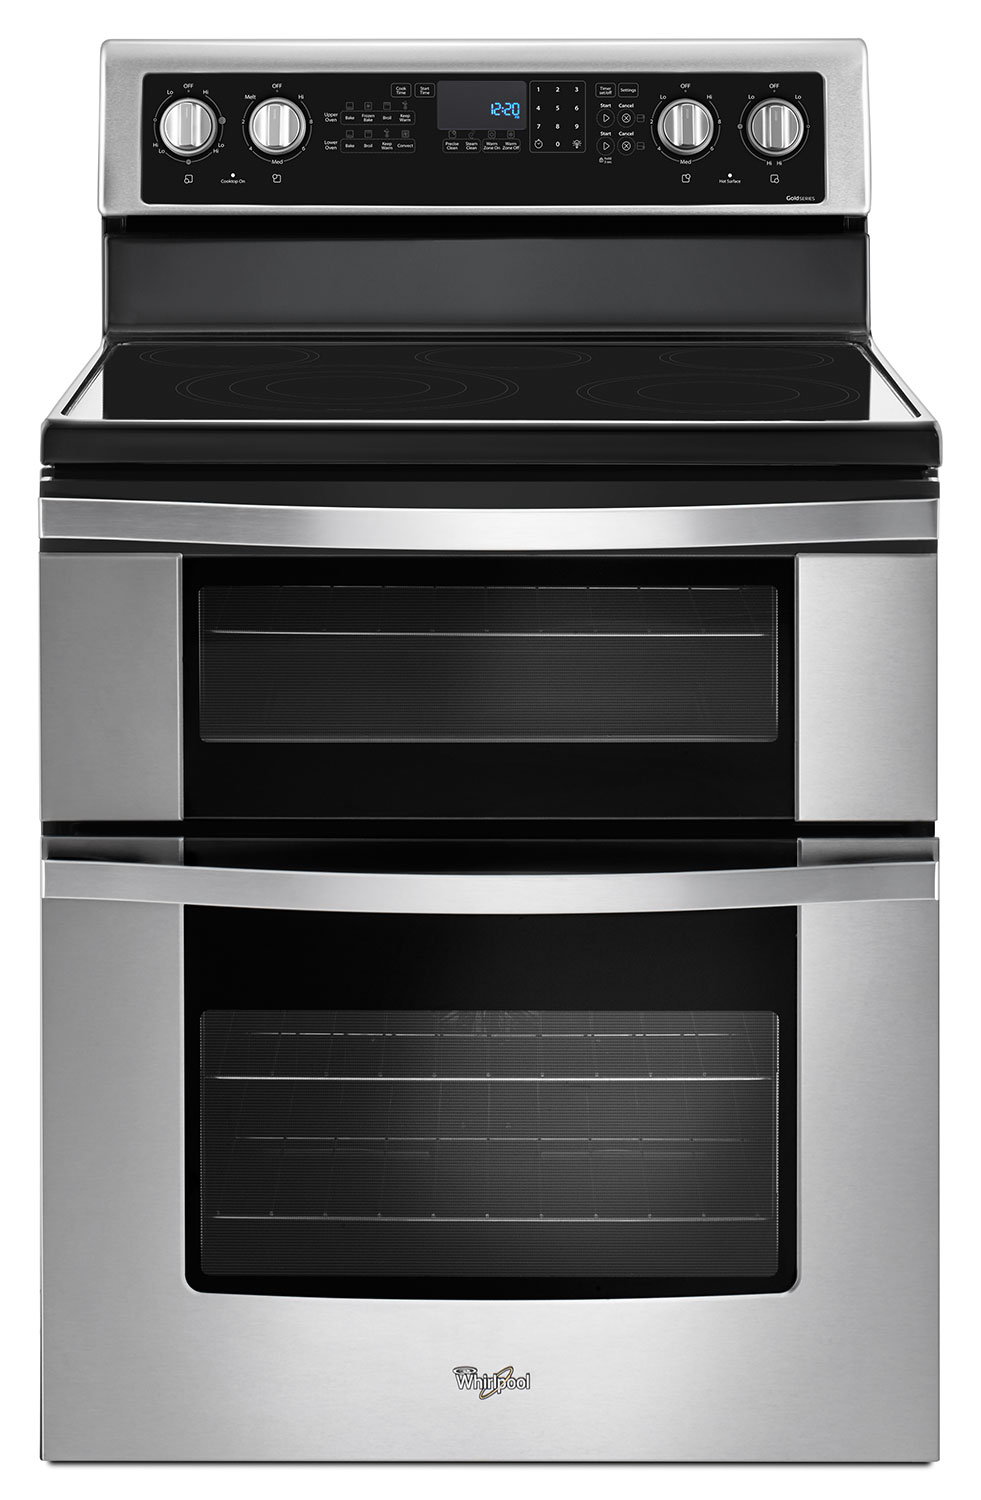 Cooking Products - Whirlpool Stainless Steel Electric Double Range (6.7 Cu. Ft.) - YWGE745C0FS